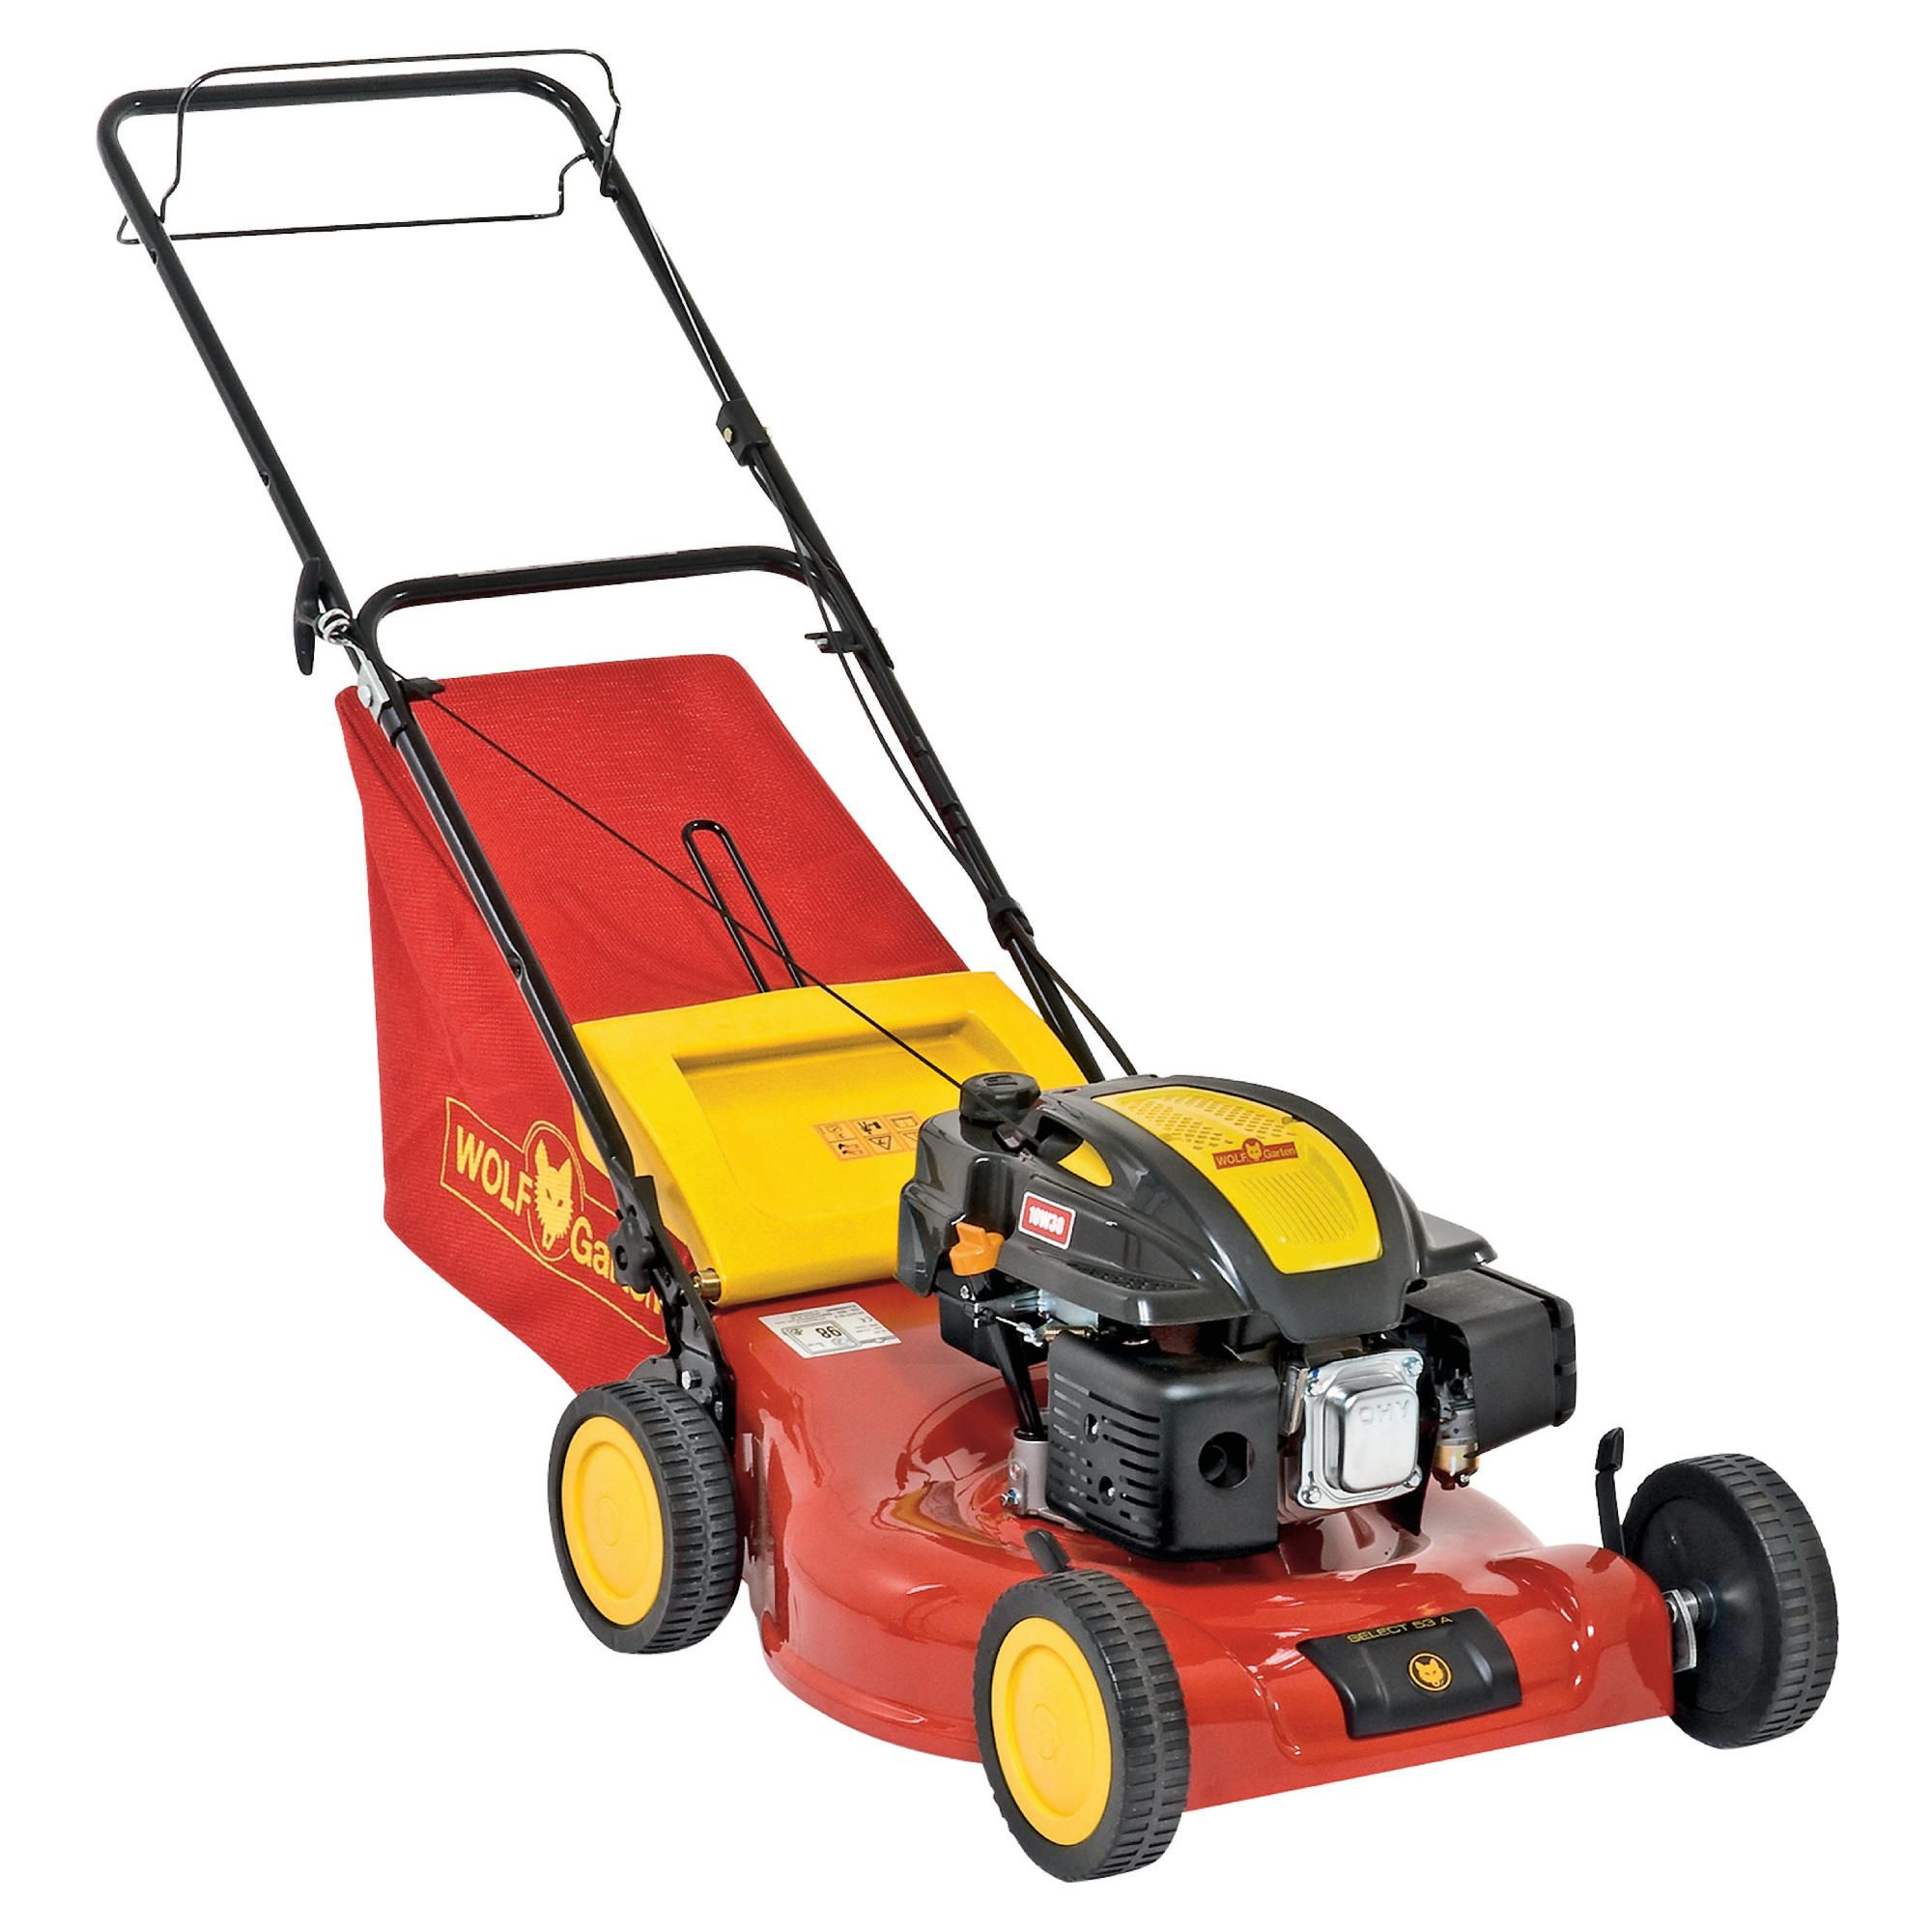 Wolf Select Petrol Lawnmower 4600A at Tesco Direct